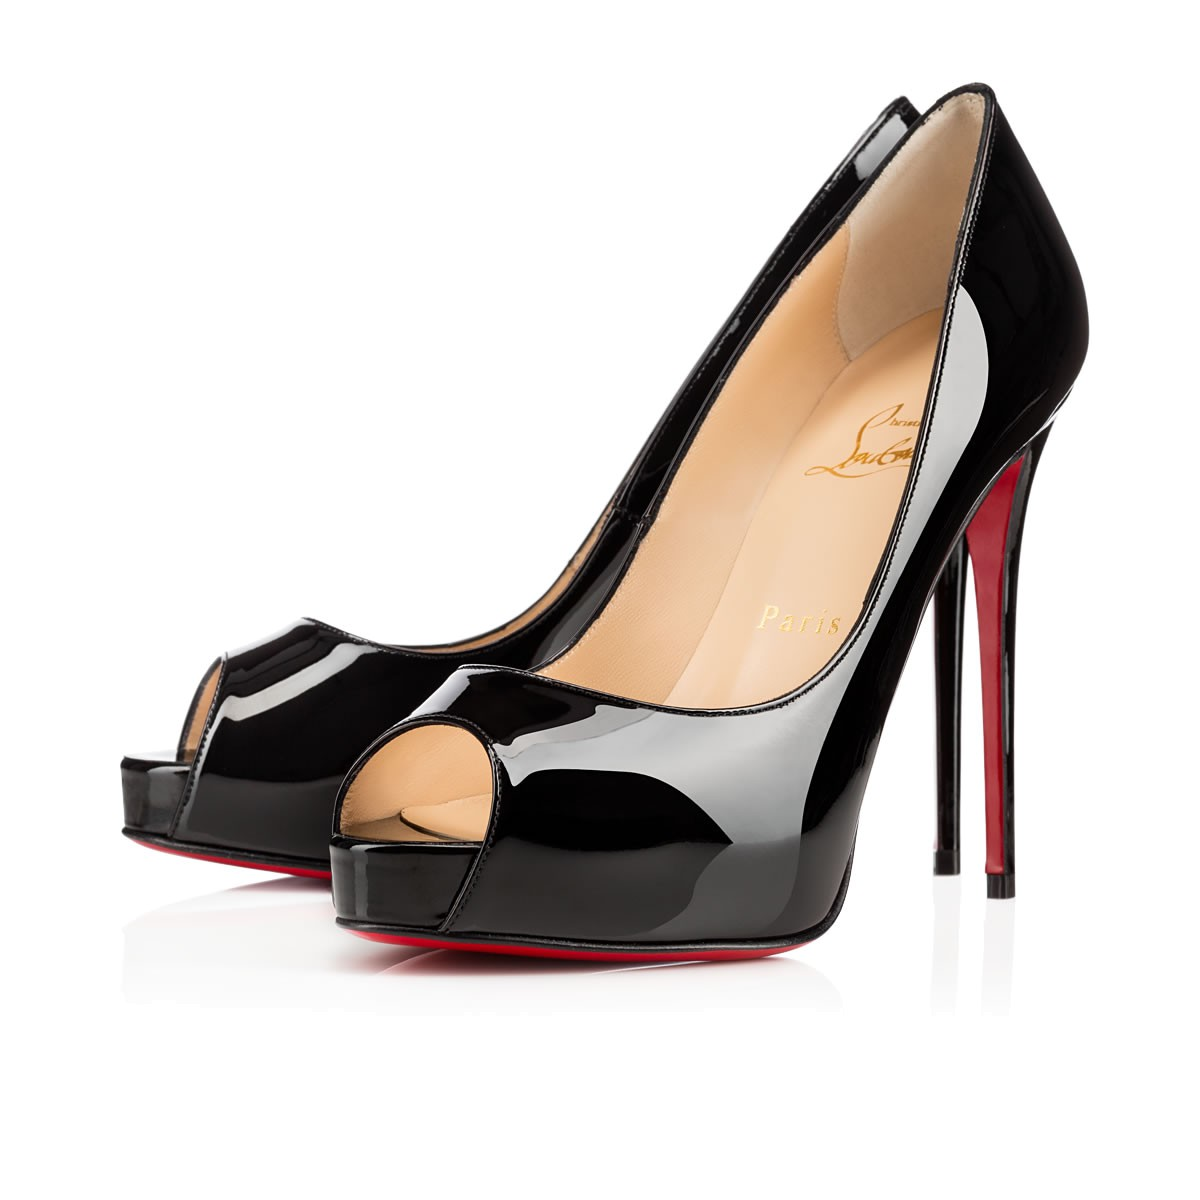 Christian Louboutin Very Prive 120 Pumps free shipping best cheap tumblr brand new unisex cheap price good selling cheap online sale the cheapest xfseTW